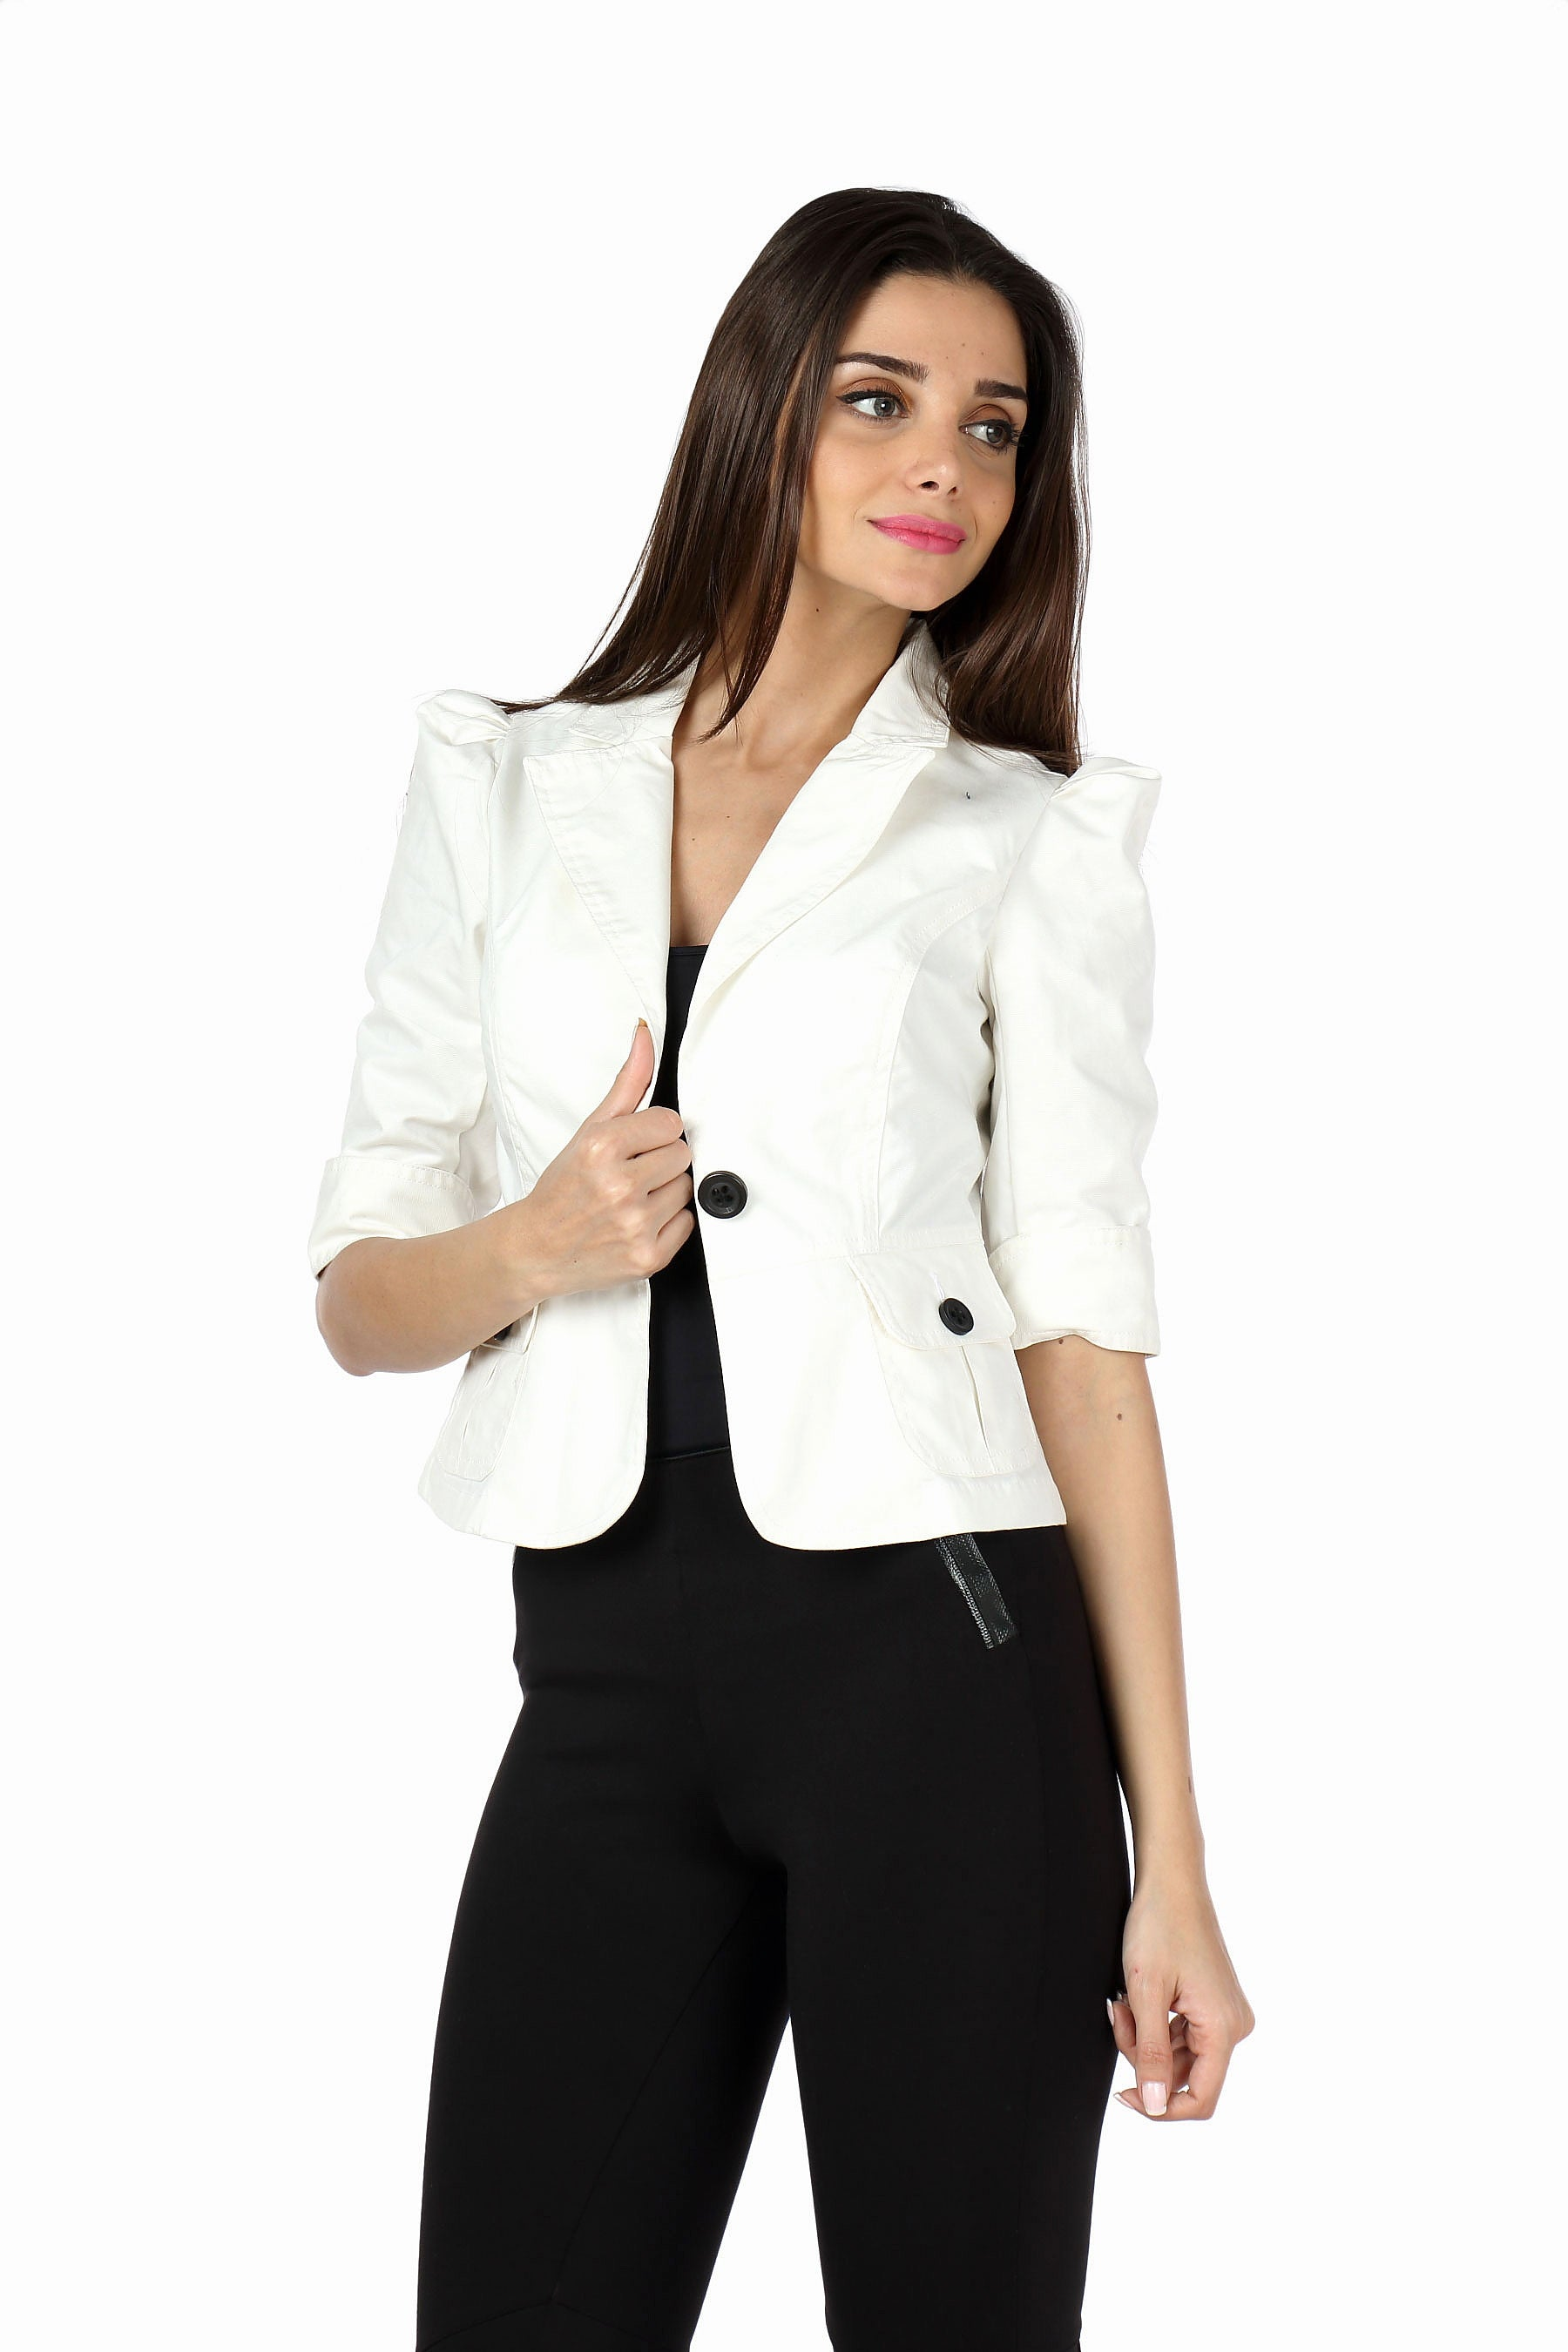 The Classic Jacket in White Front 2